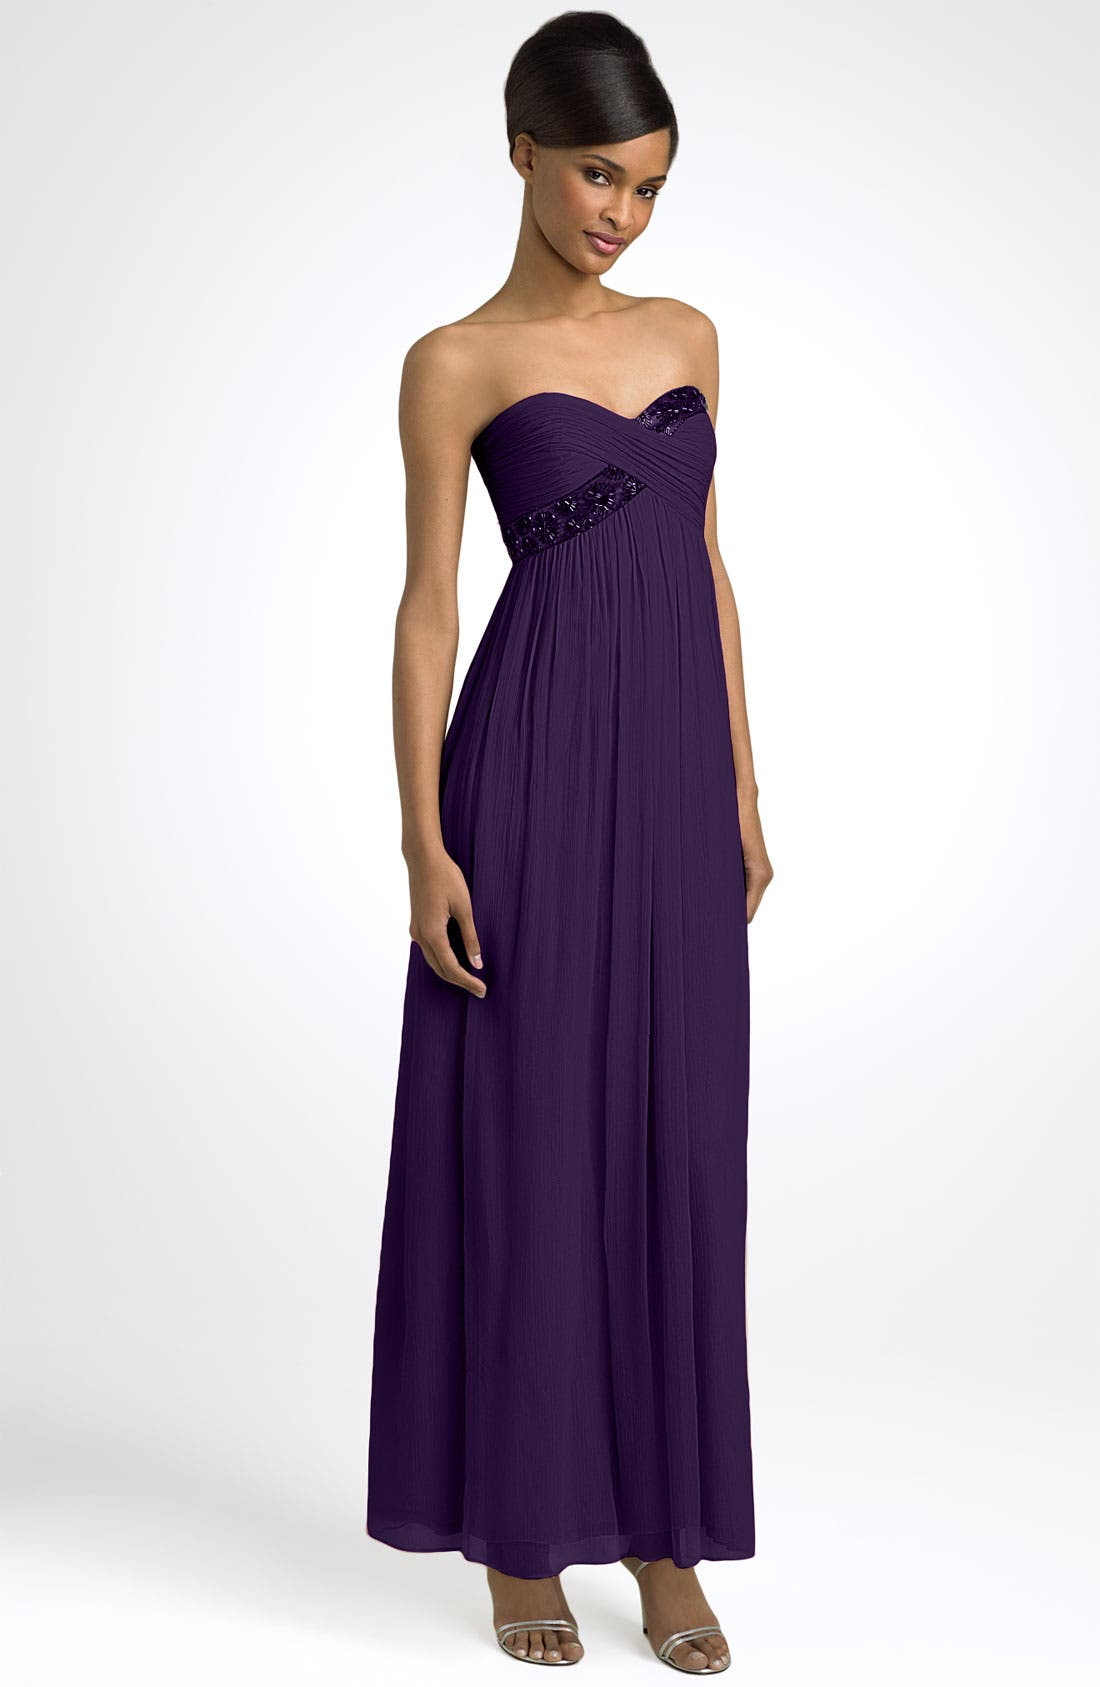 Main Image - Maggy London Strapless Beaded Chiffon Empire Gown